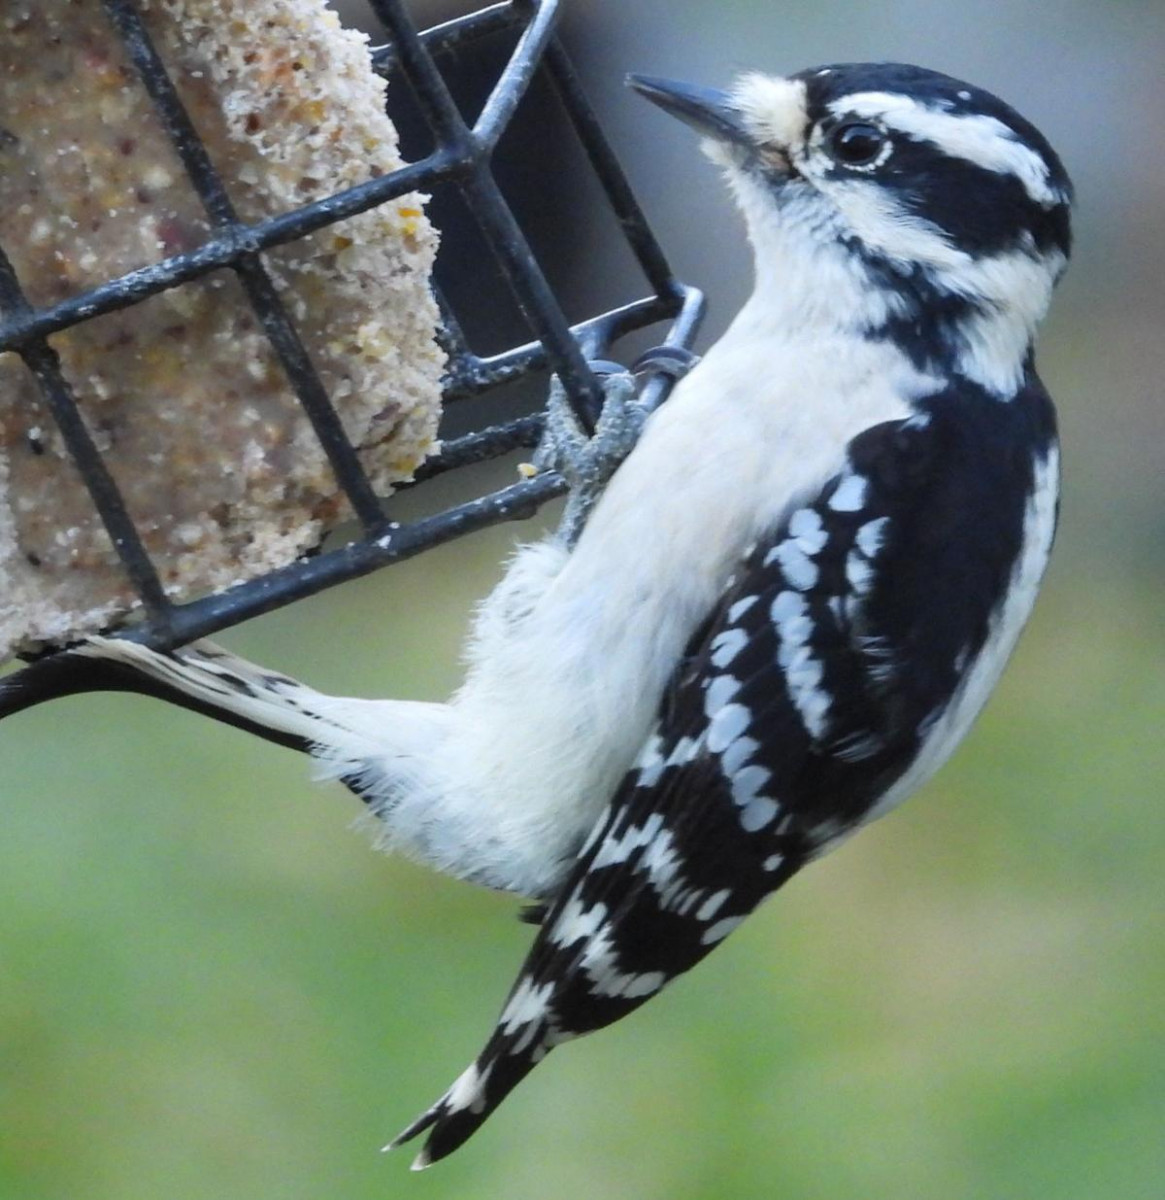 This is a female downy woodpecker hanging on a wire cage suet block feeder. Stiff tail feathers and zygodactyl feet on display.